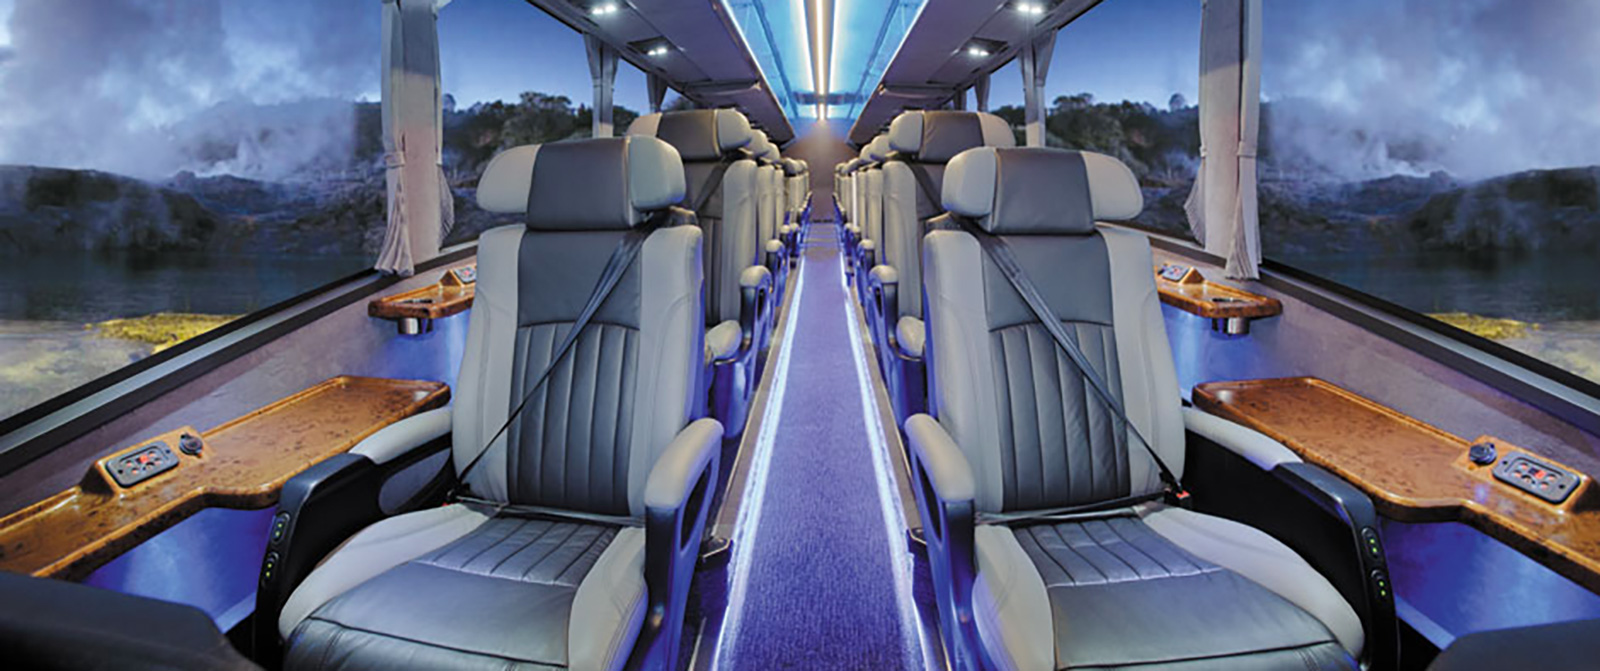 Interior of Grand Pacific Tours' Ultimate Small Group Luxury Coach